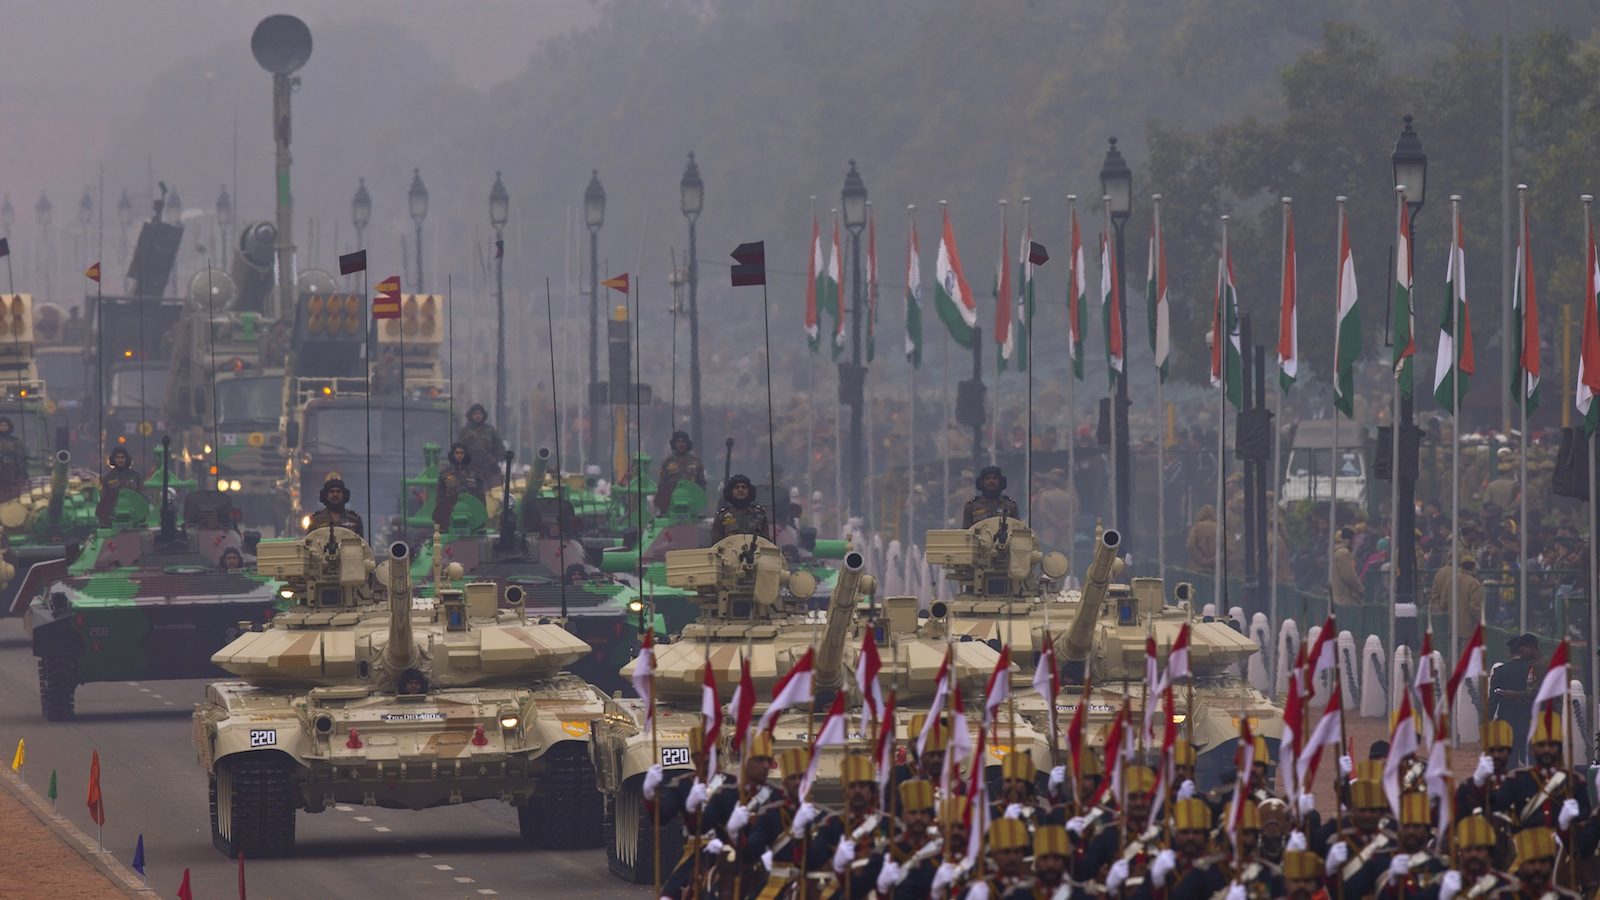 T-90 tanks roll down Rajpath, a ceremonial boulevard that runs from Indian President's palace to war memorial India Gate, as part of the full dress rehearsal ahead of Republic Day parade in New Delhi, India, Friday, Jan. 23, 2015. U.S. President Barack Obama will be the chief guest during this year's parade which will be held on Jan. 26. (AP Photo/Saurabh Das)